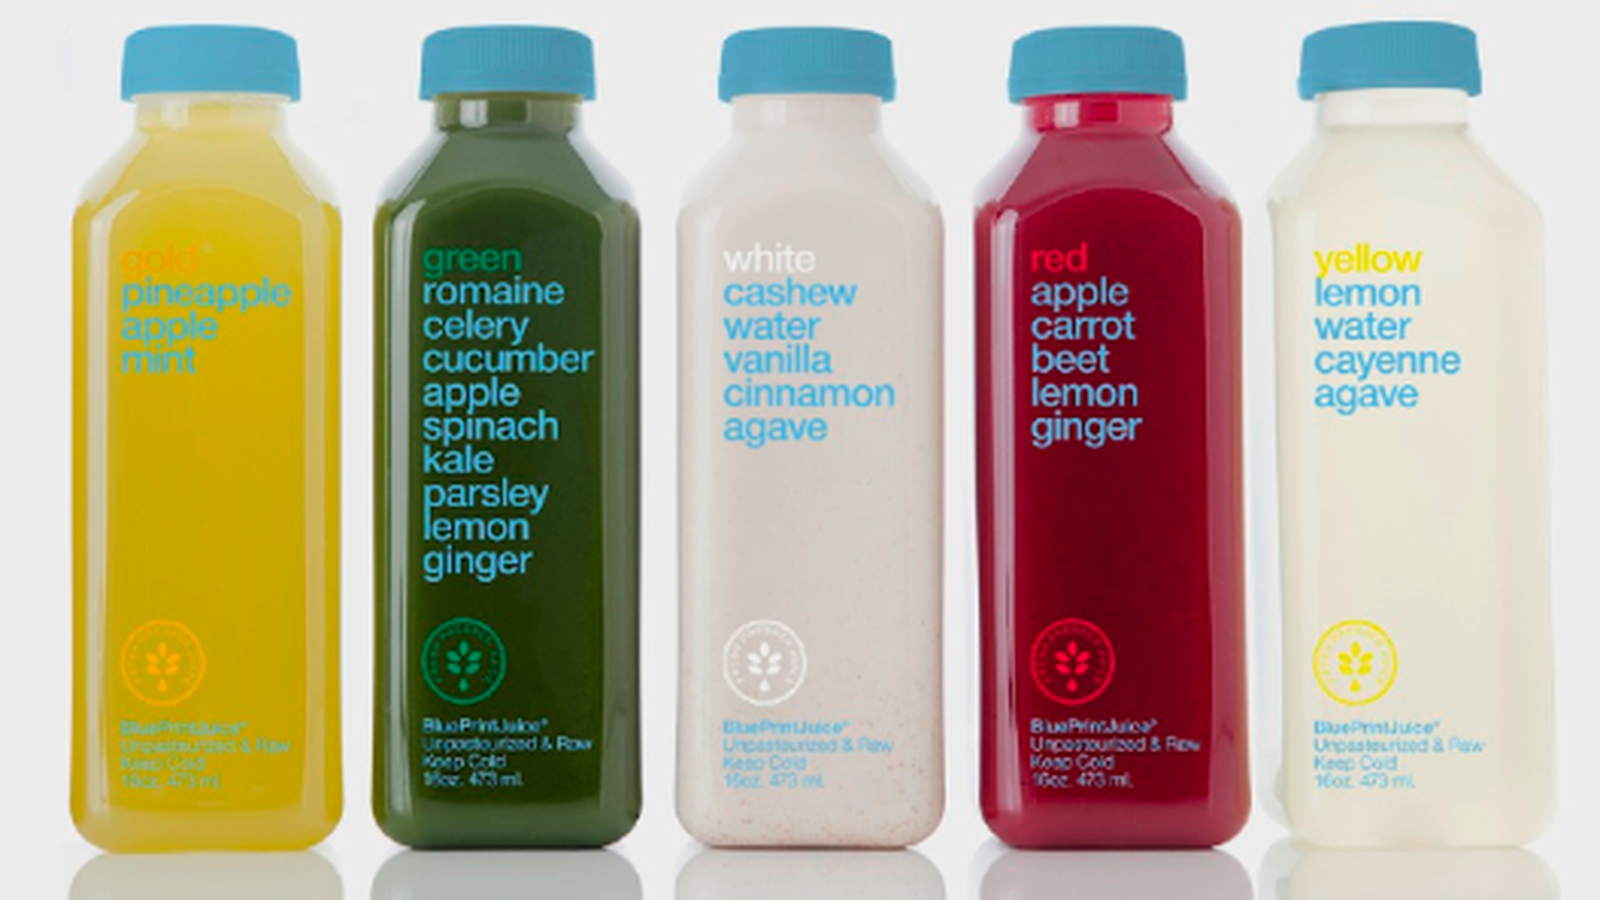 Blueprintcleanse at whole foods screaming mimis v day bash blueprintcleanse at whole foods screaming mimis v day bash racked ny malvernweather Choice Image